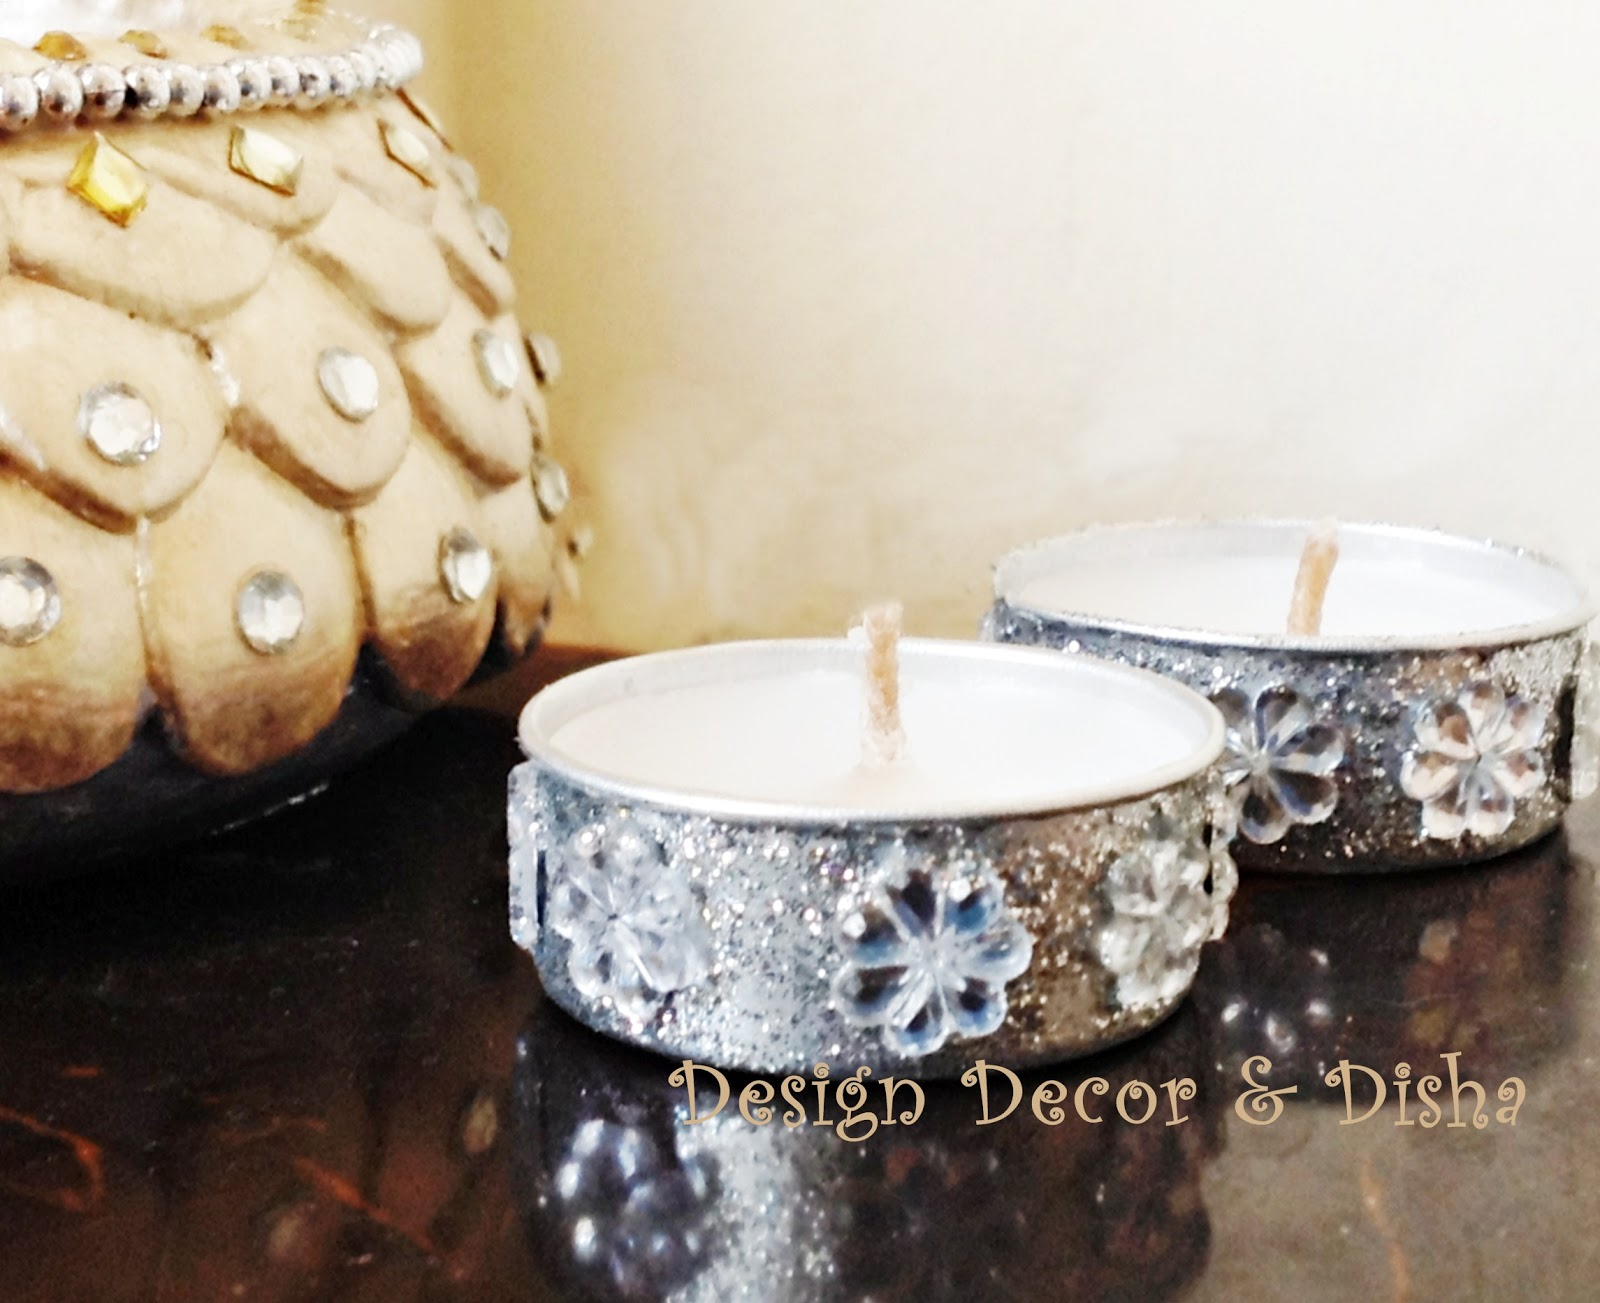 Design Decor & Disha | An Indian Design & Decor Blog: Diwali Craft ...